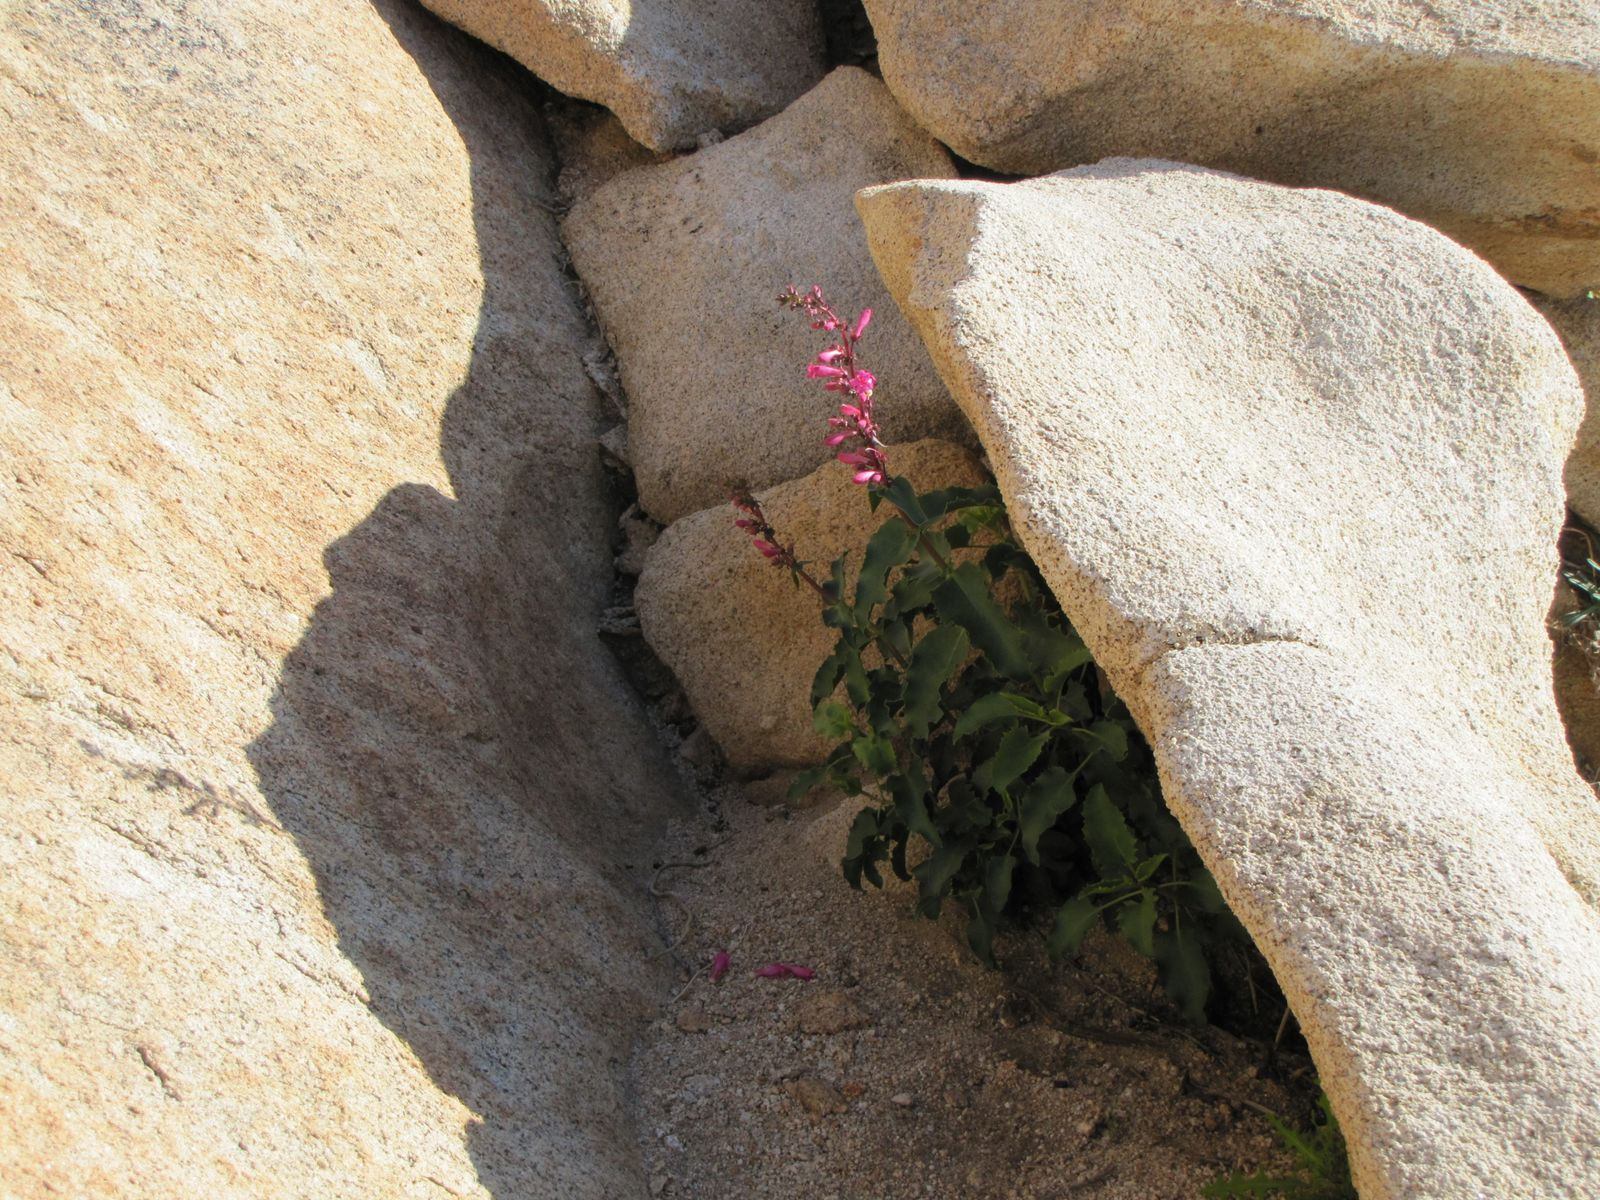 Desert Primrose blooming in the shelter of a rock